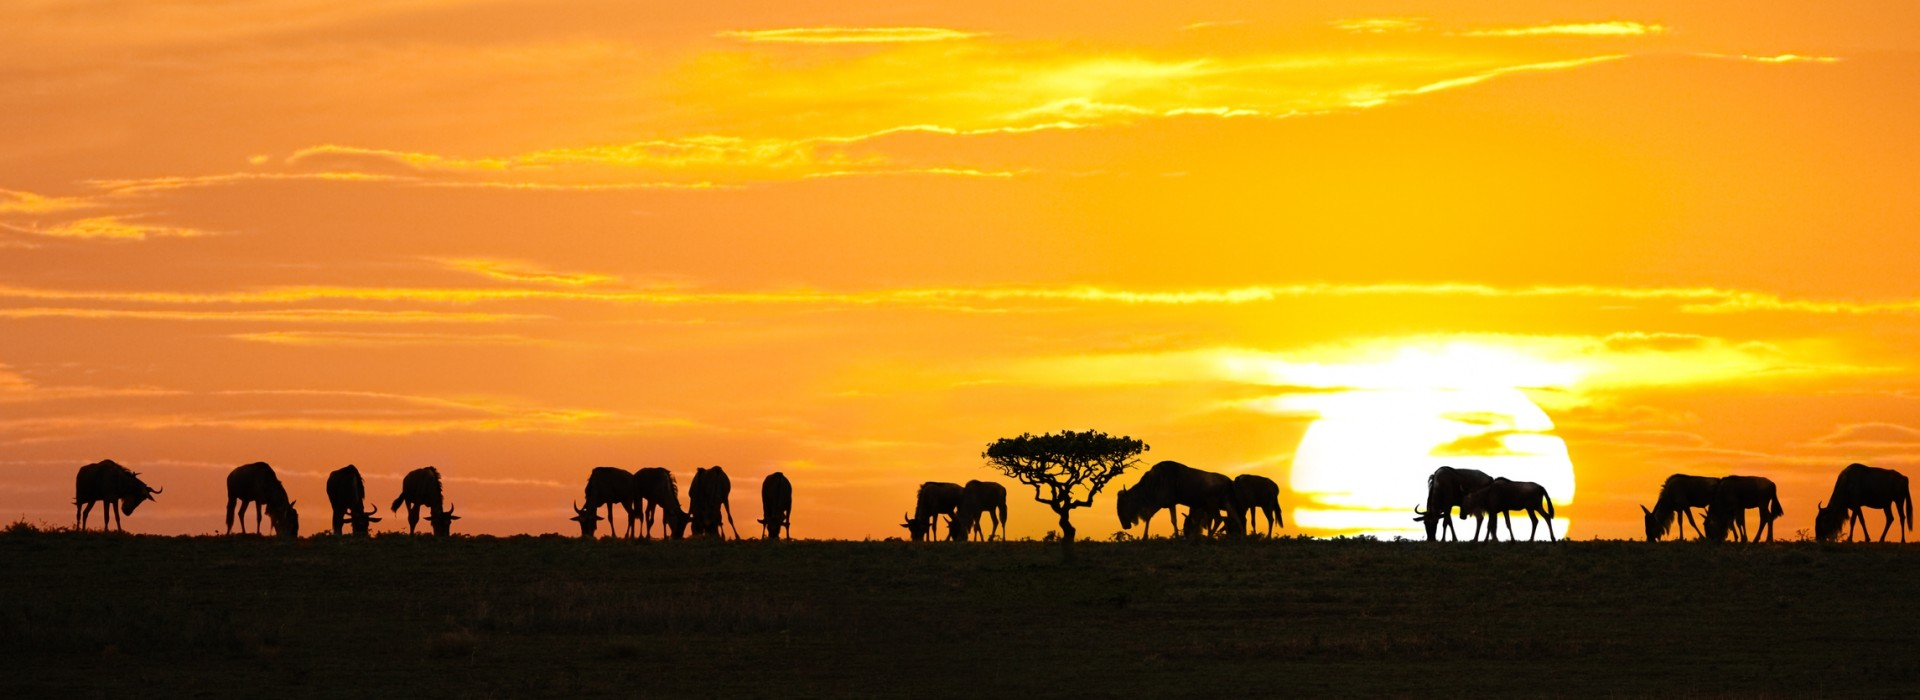 Getaways and short breaks Tours in Tanzania